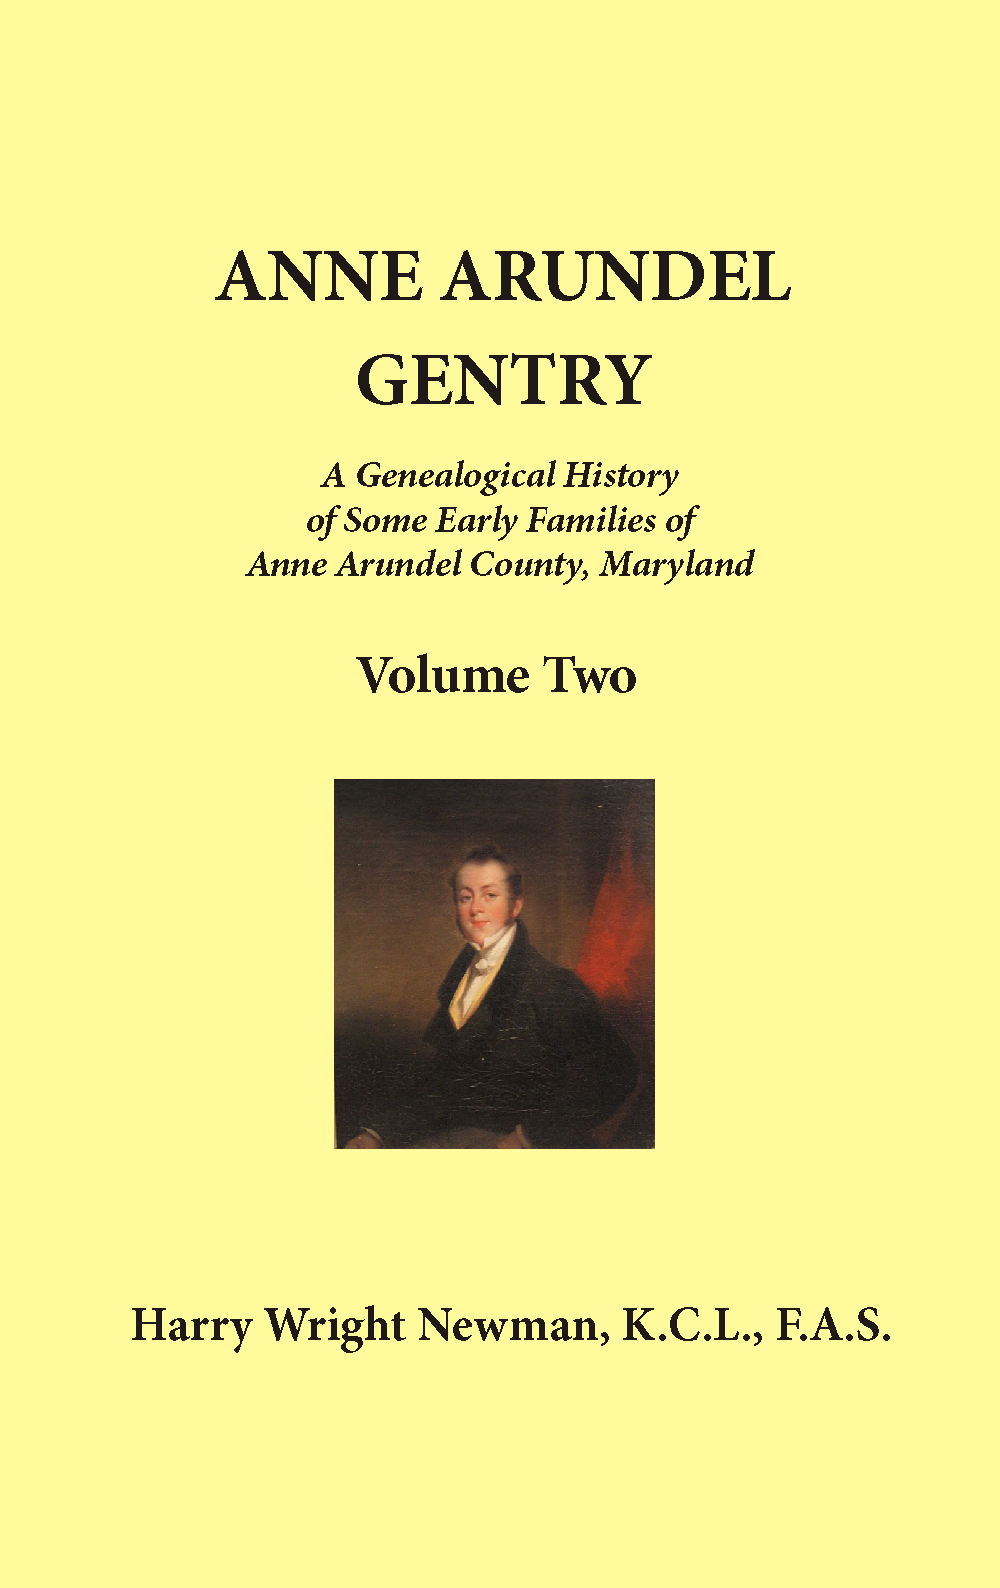 Anne Arundel Gentry, A Genealogical History of Some Early Families of Anne Arundel County, Maryland, Volume 2